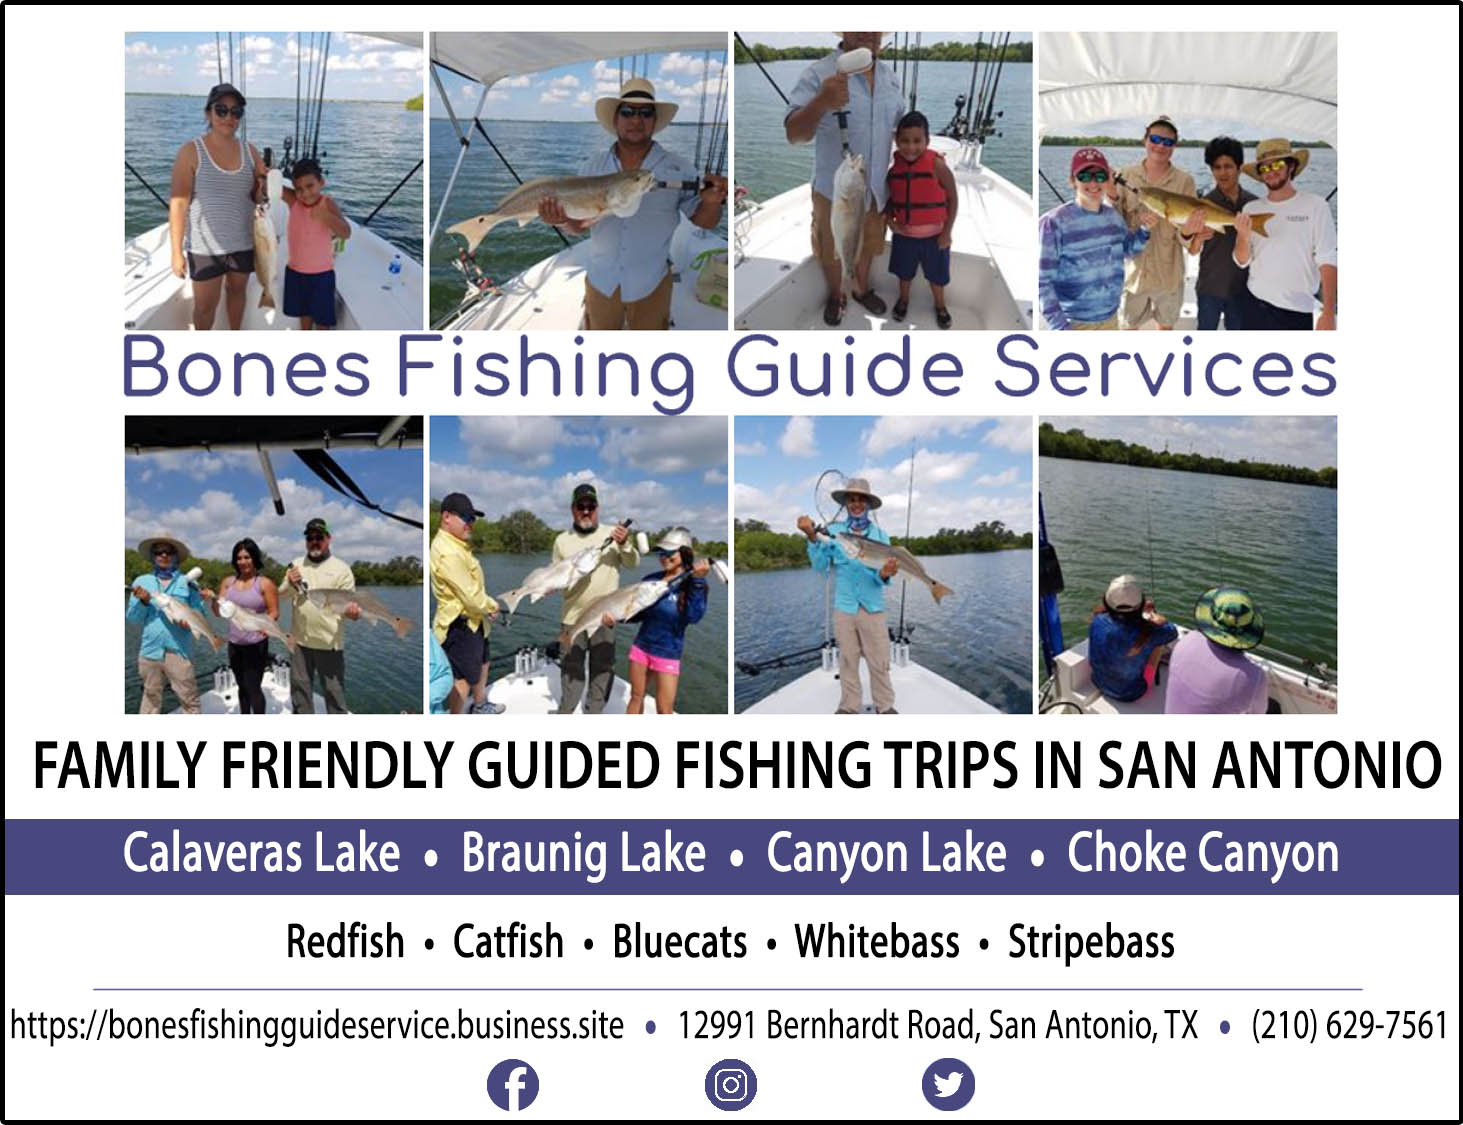 Bones Fishing Guide Service